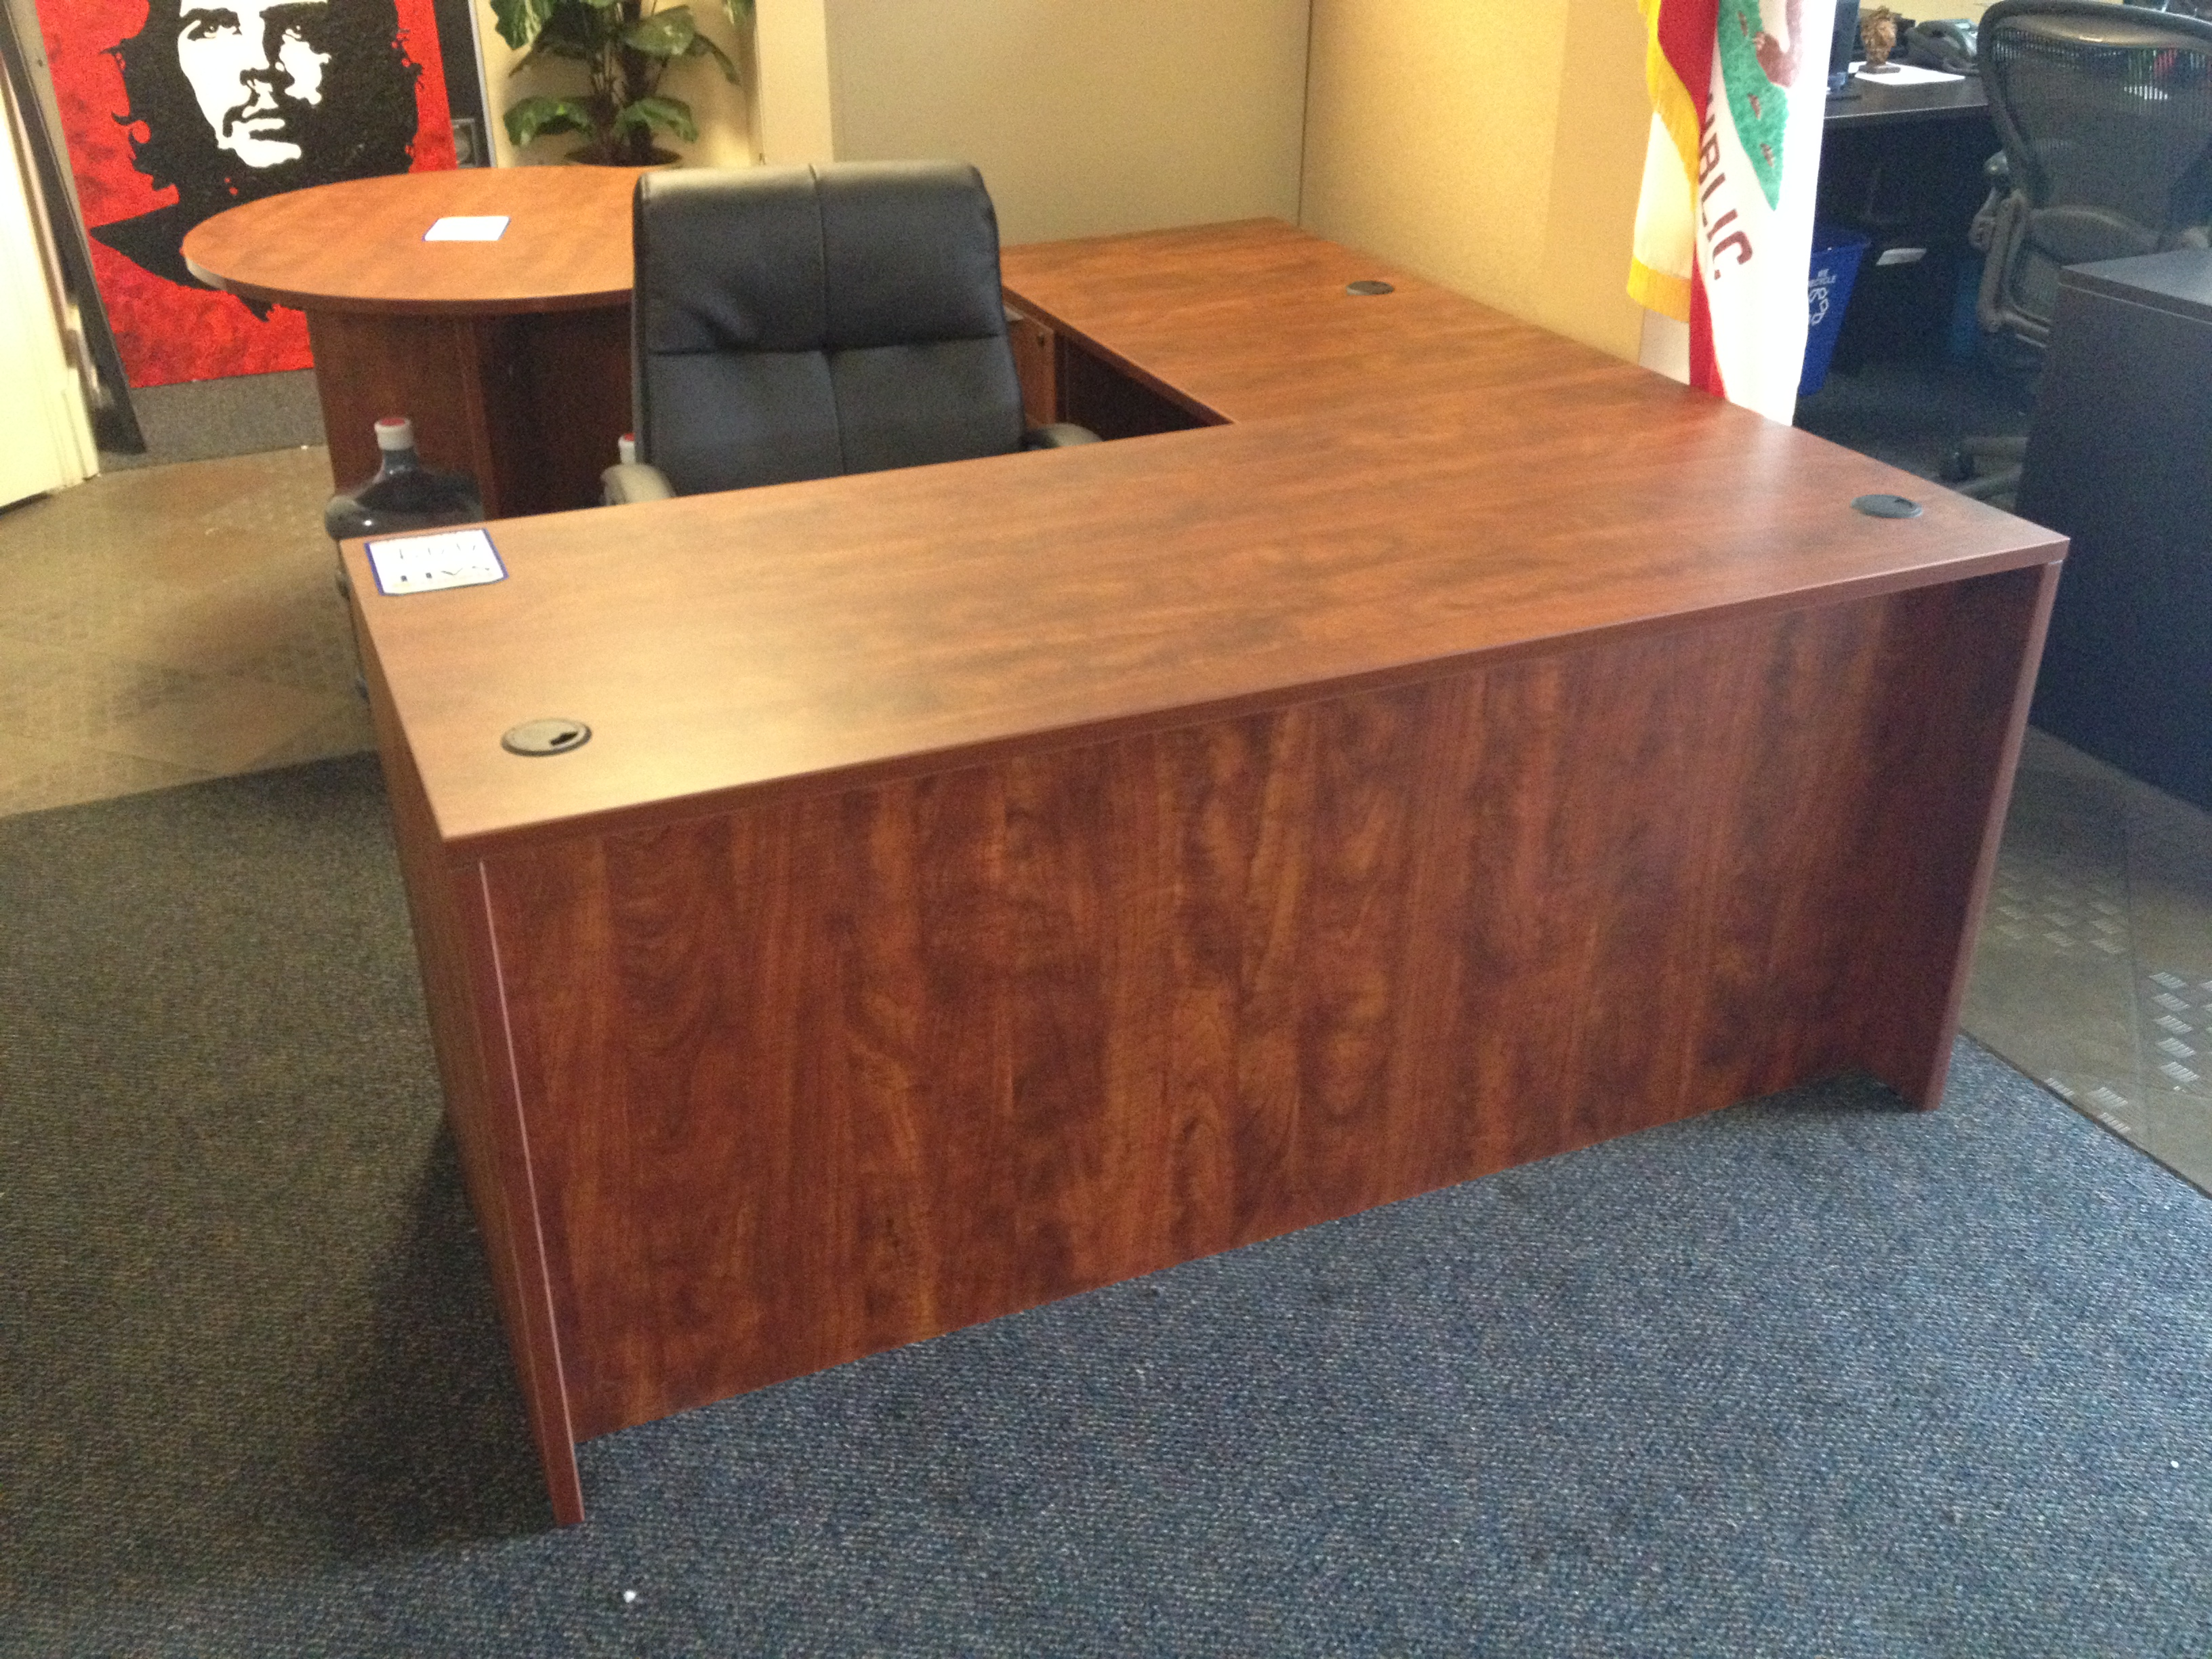 new laminate single pedestal l shape desk by offices to go new and used office furniture in. Black Bedroom Furniture Sets. Home Design Ideas